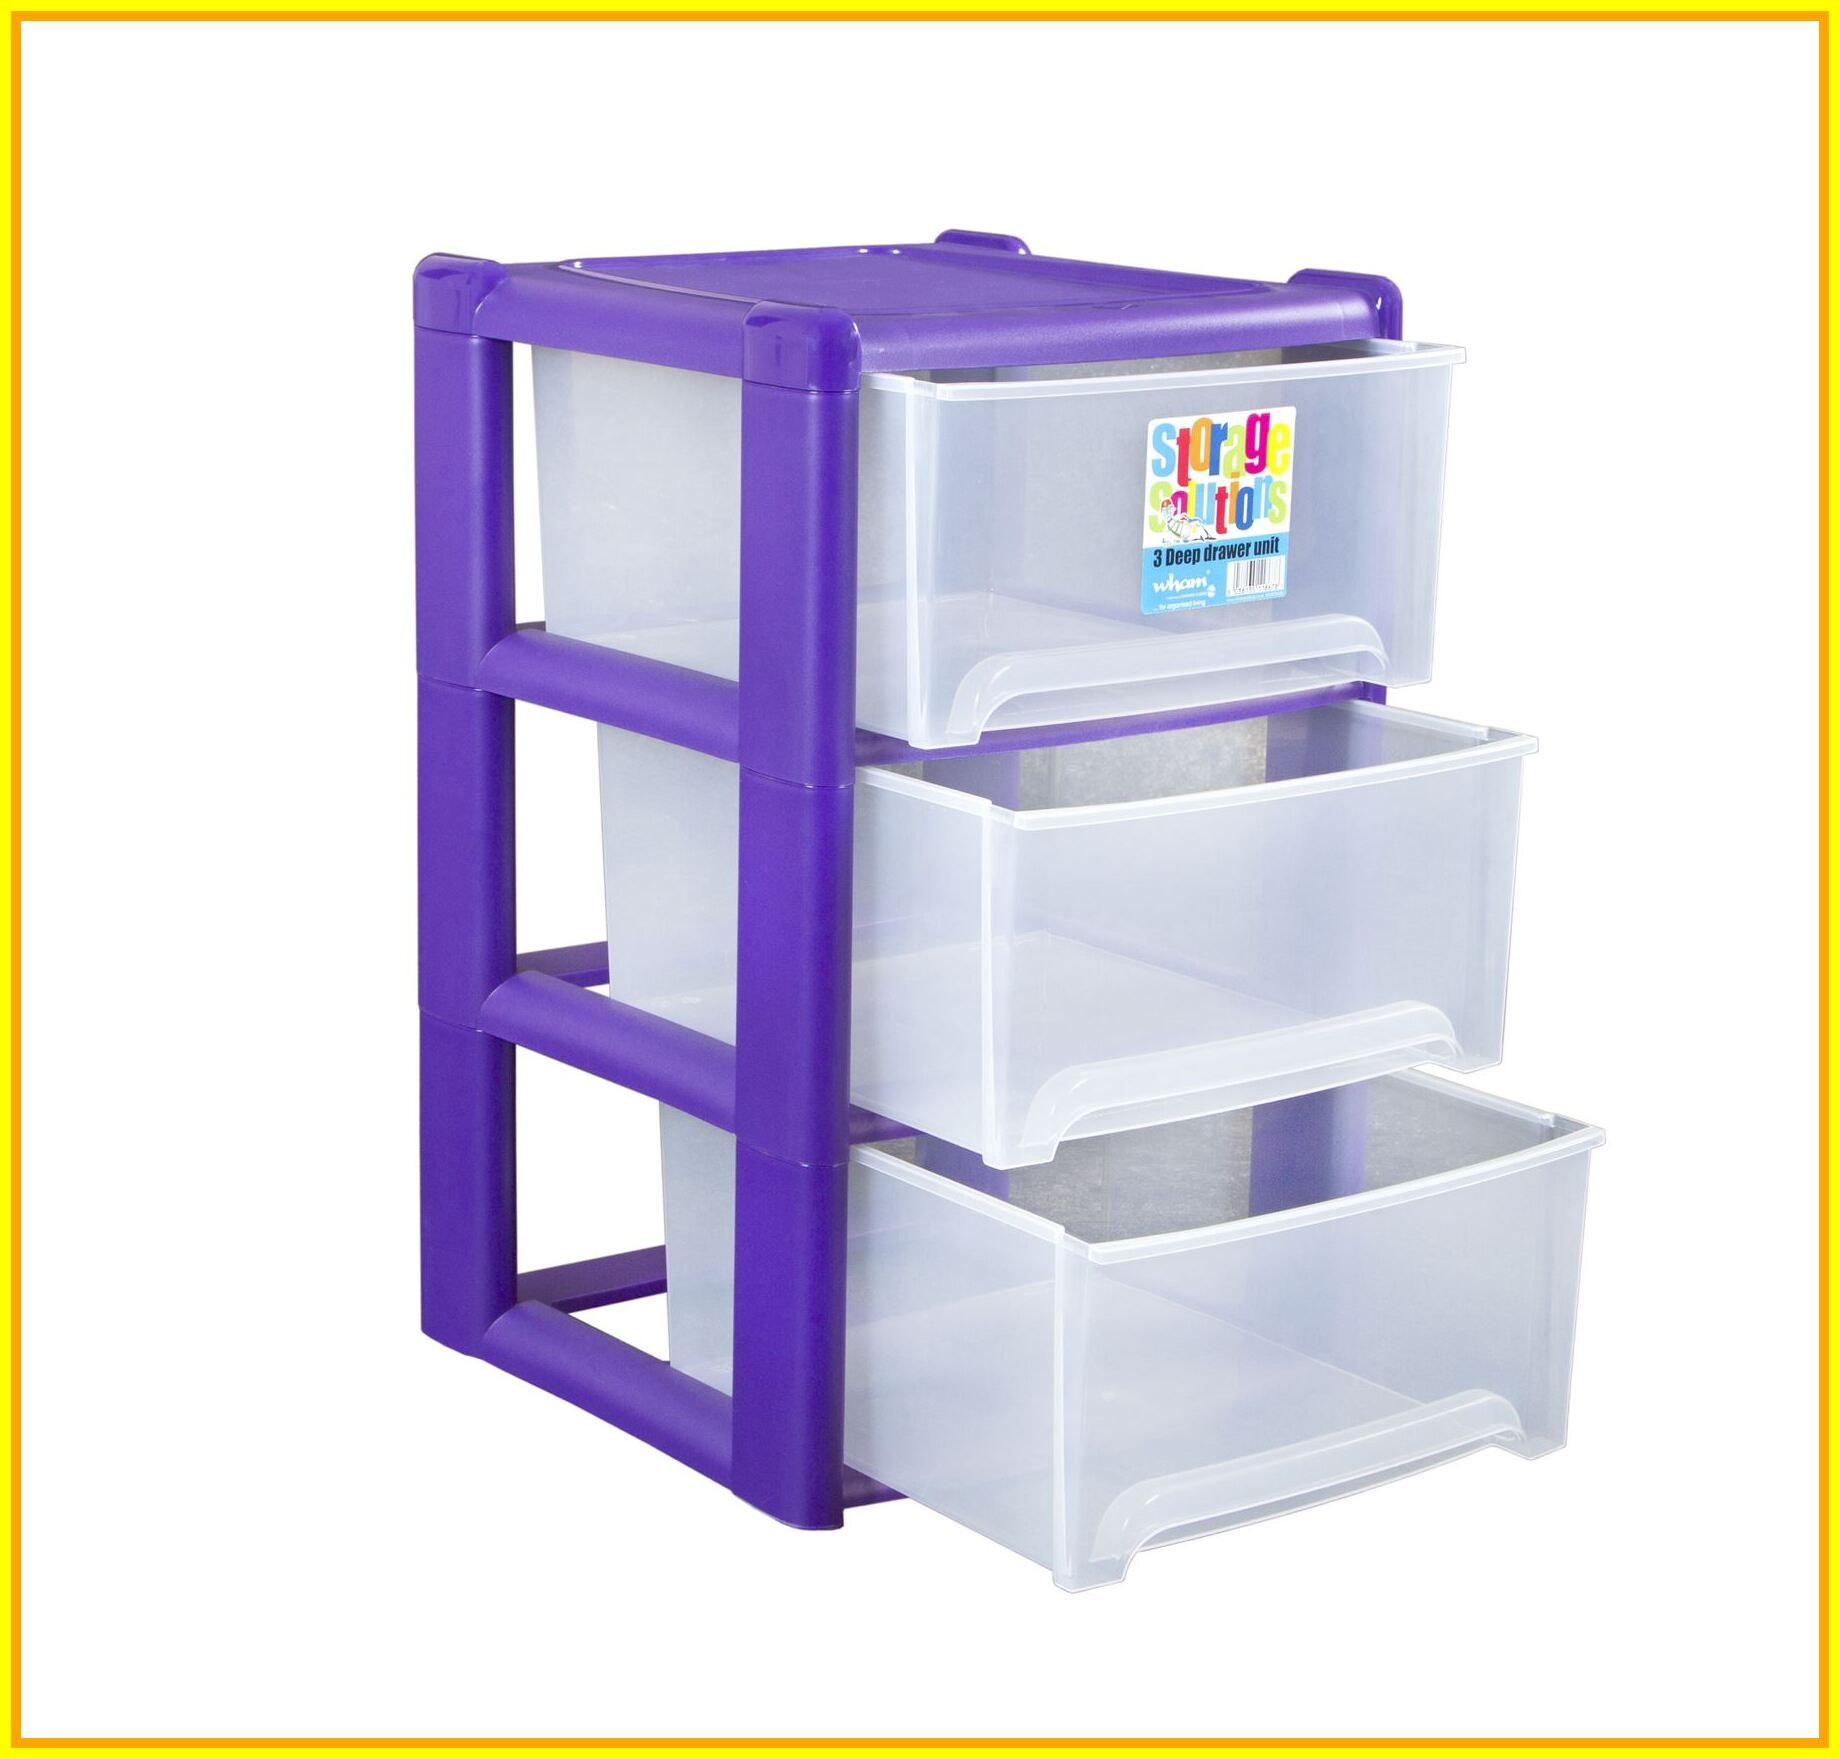 38 Reference Of Plastic Drawer Unit Pink In 2020 Modern Home Office Furniture Plastic Drawers Drawer Unit